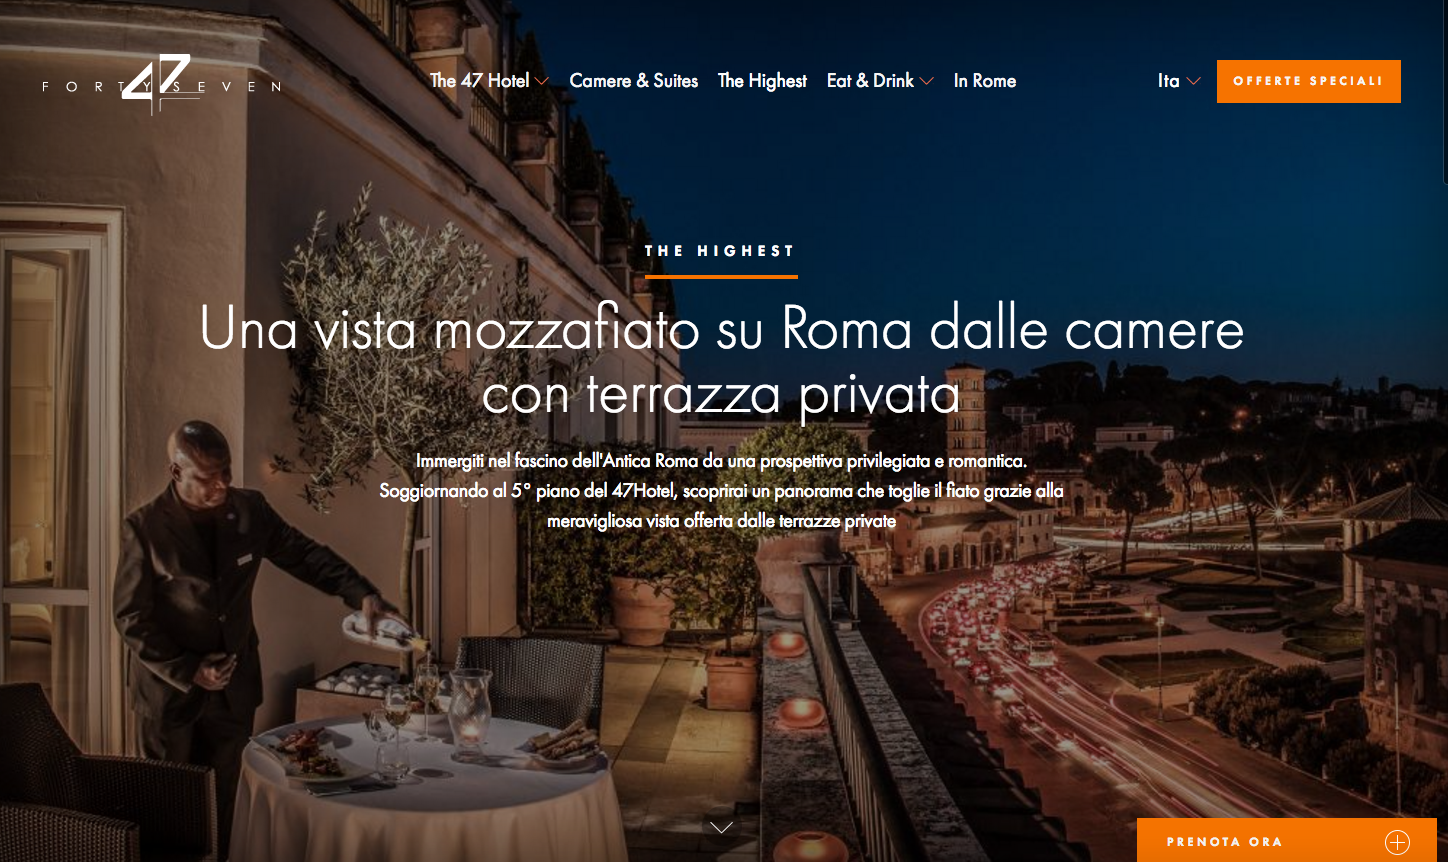 offerta_efficace_turismo_fortyseven_hotel_1.png